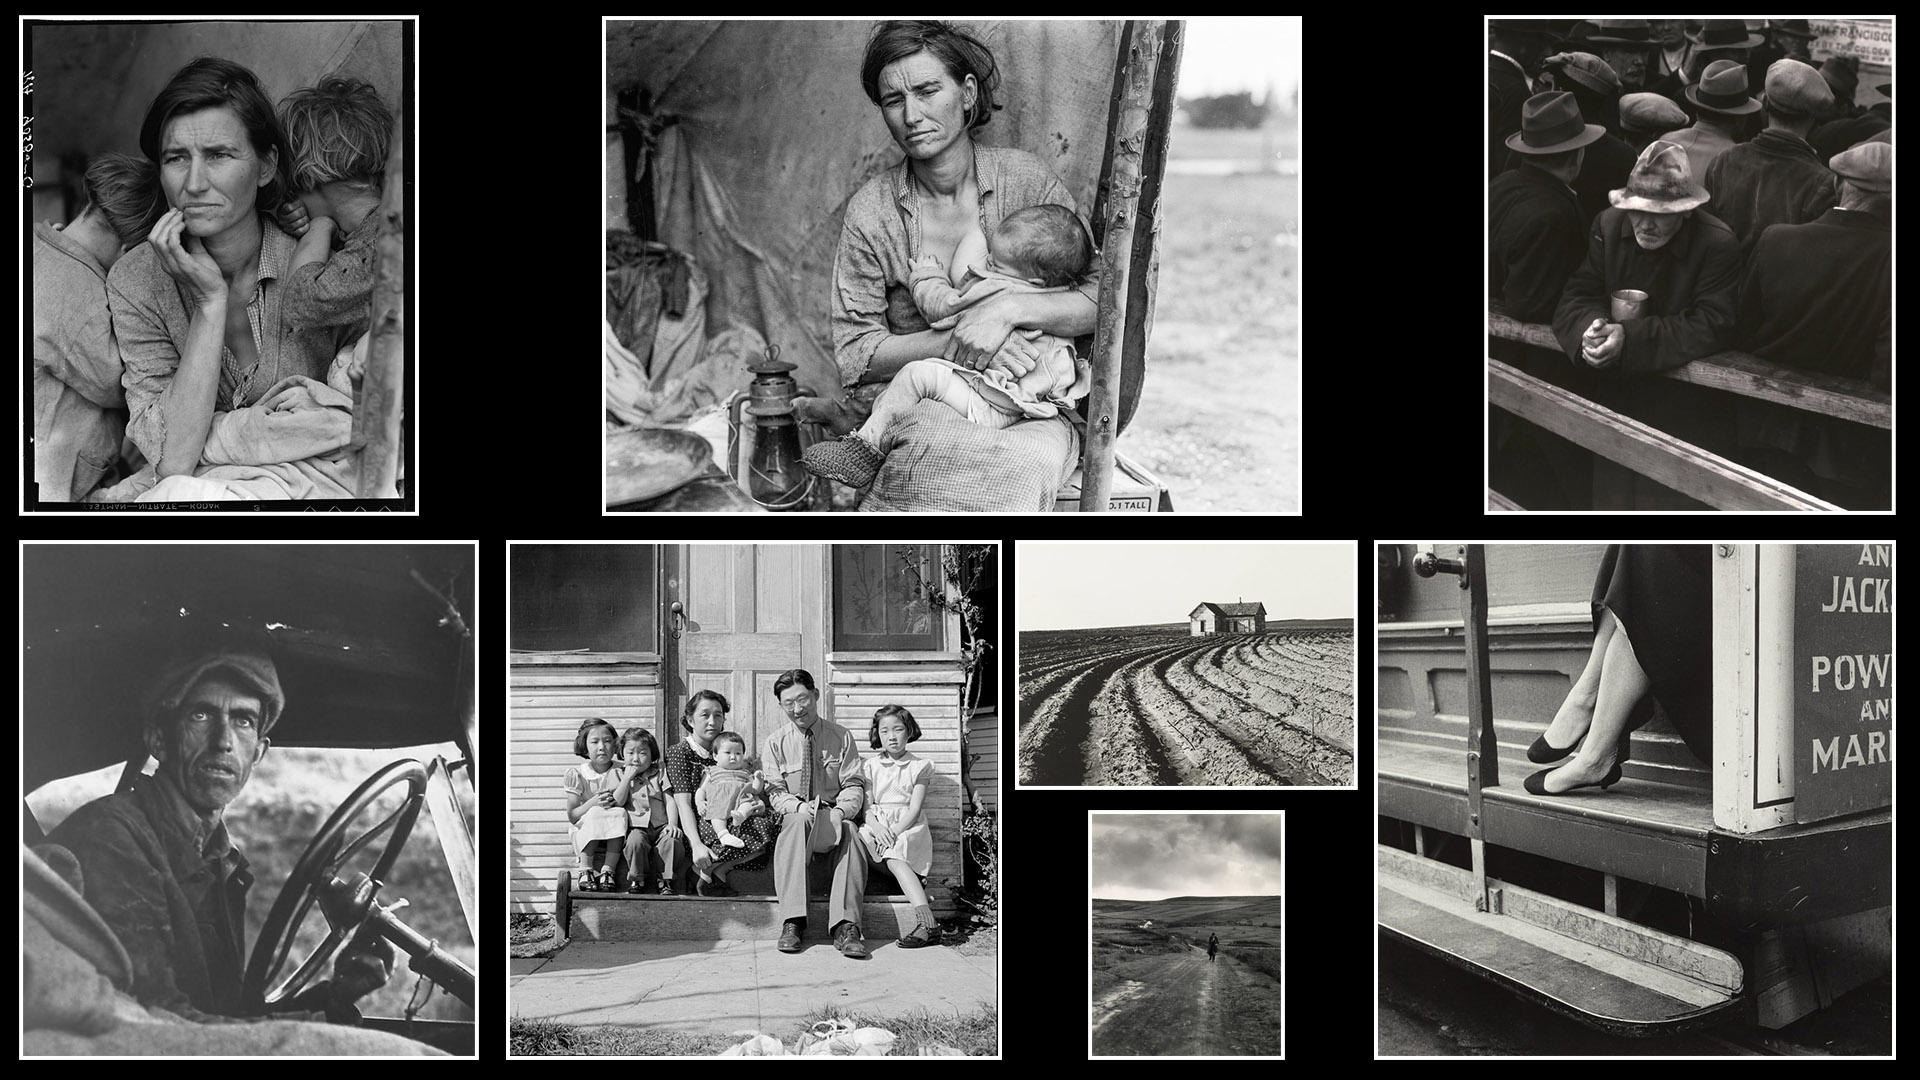 On Photography: The photographs of Dorothea Lange